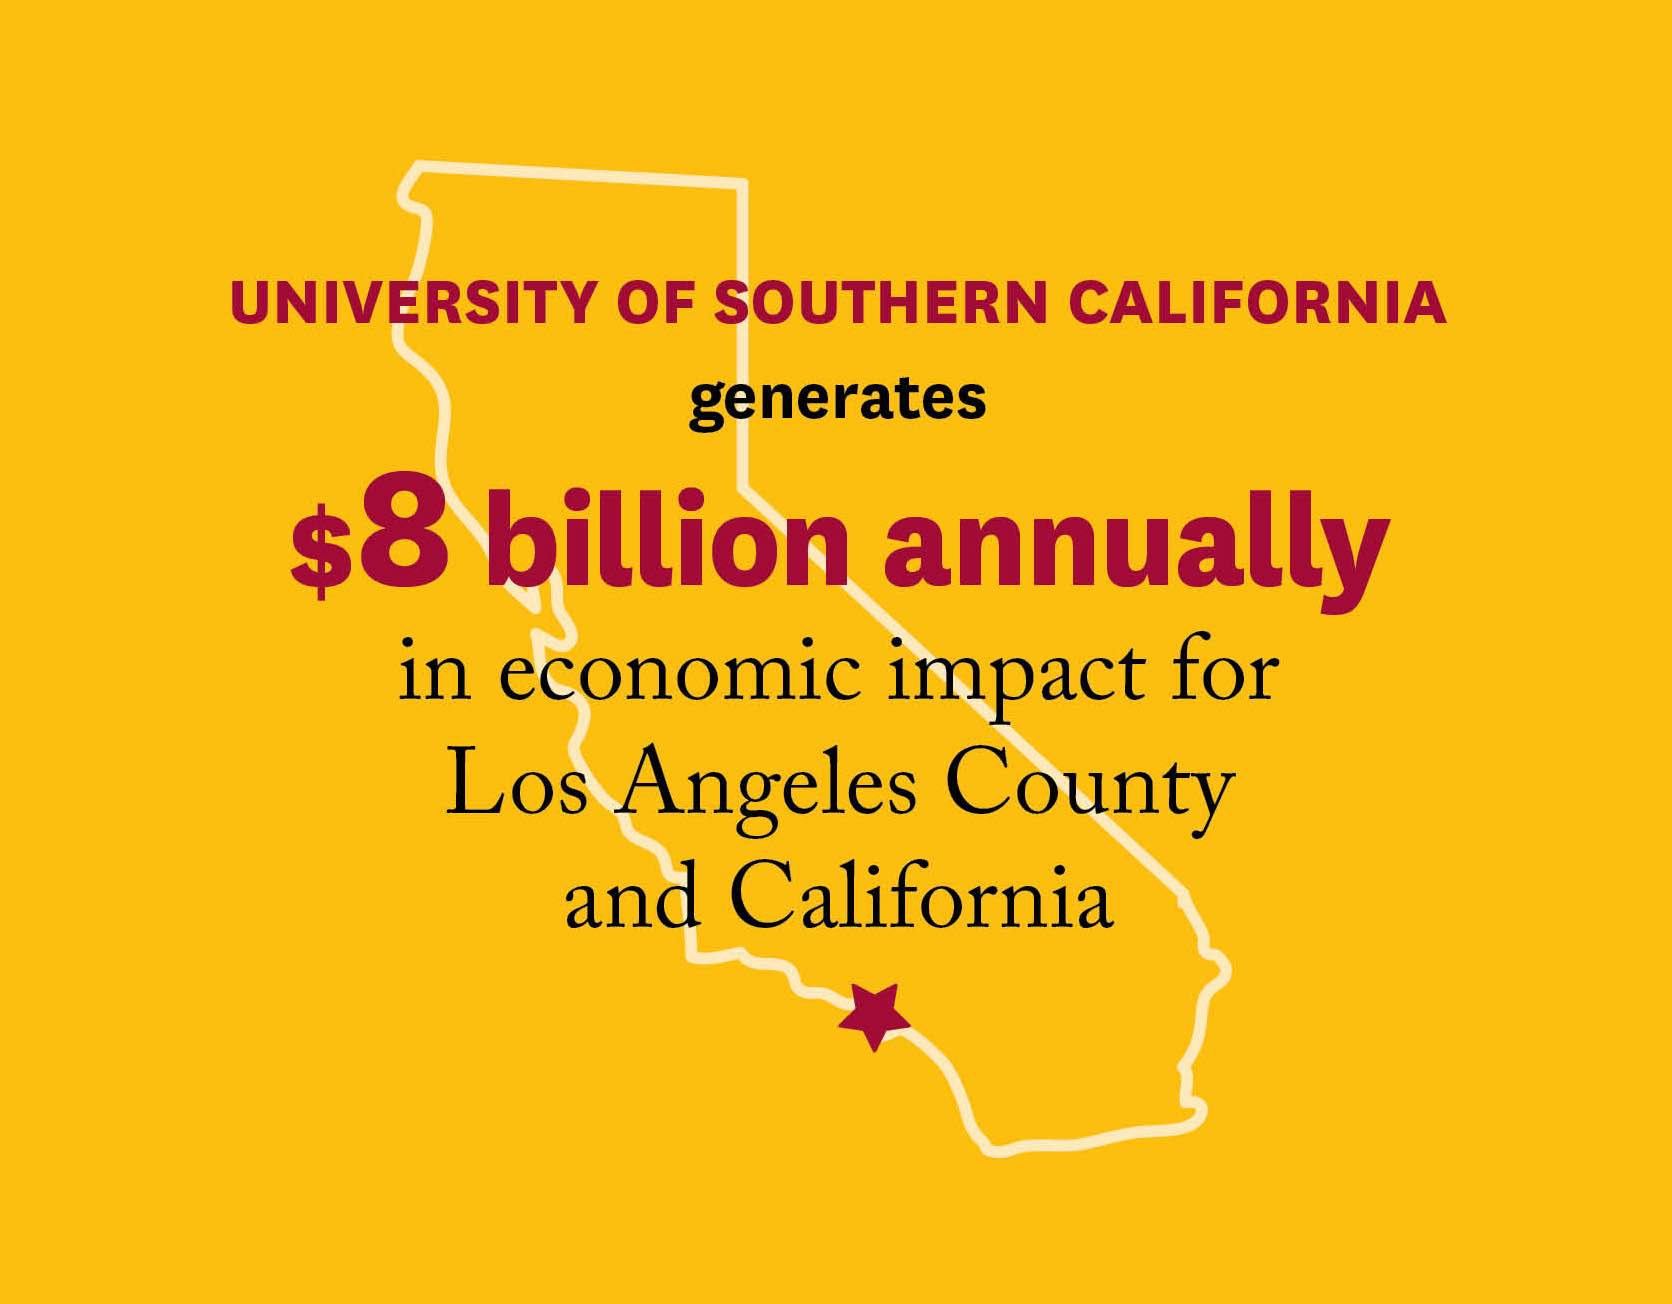 USC has a large economic impact